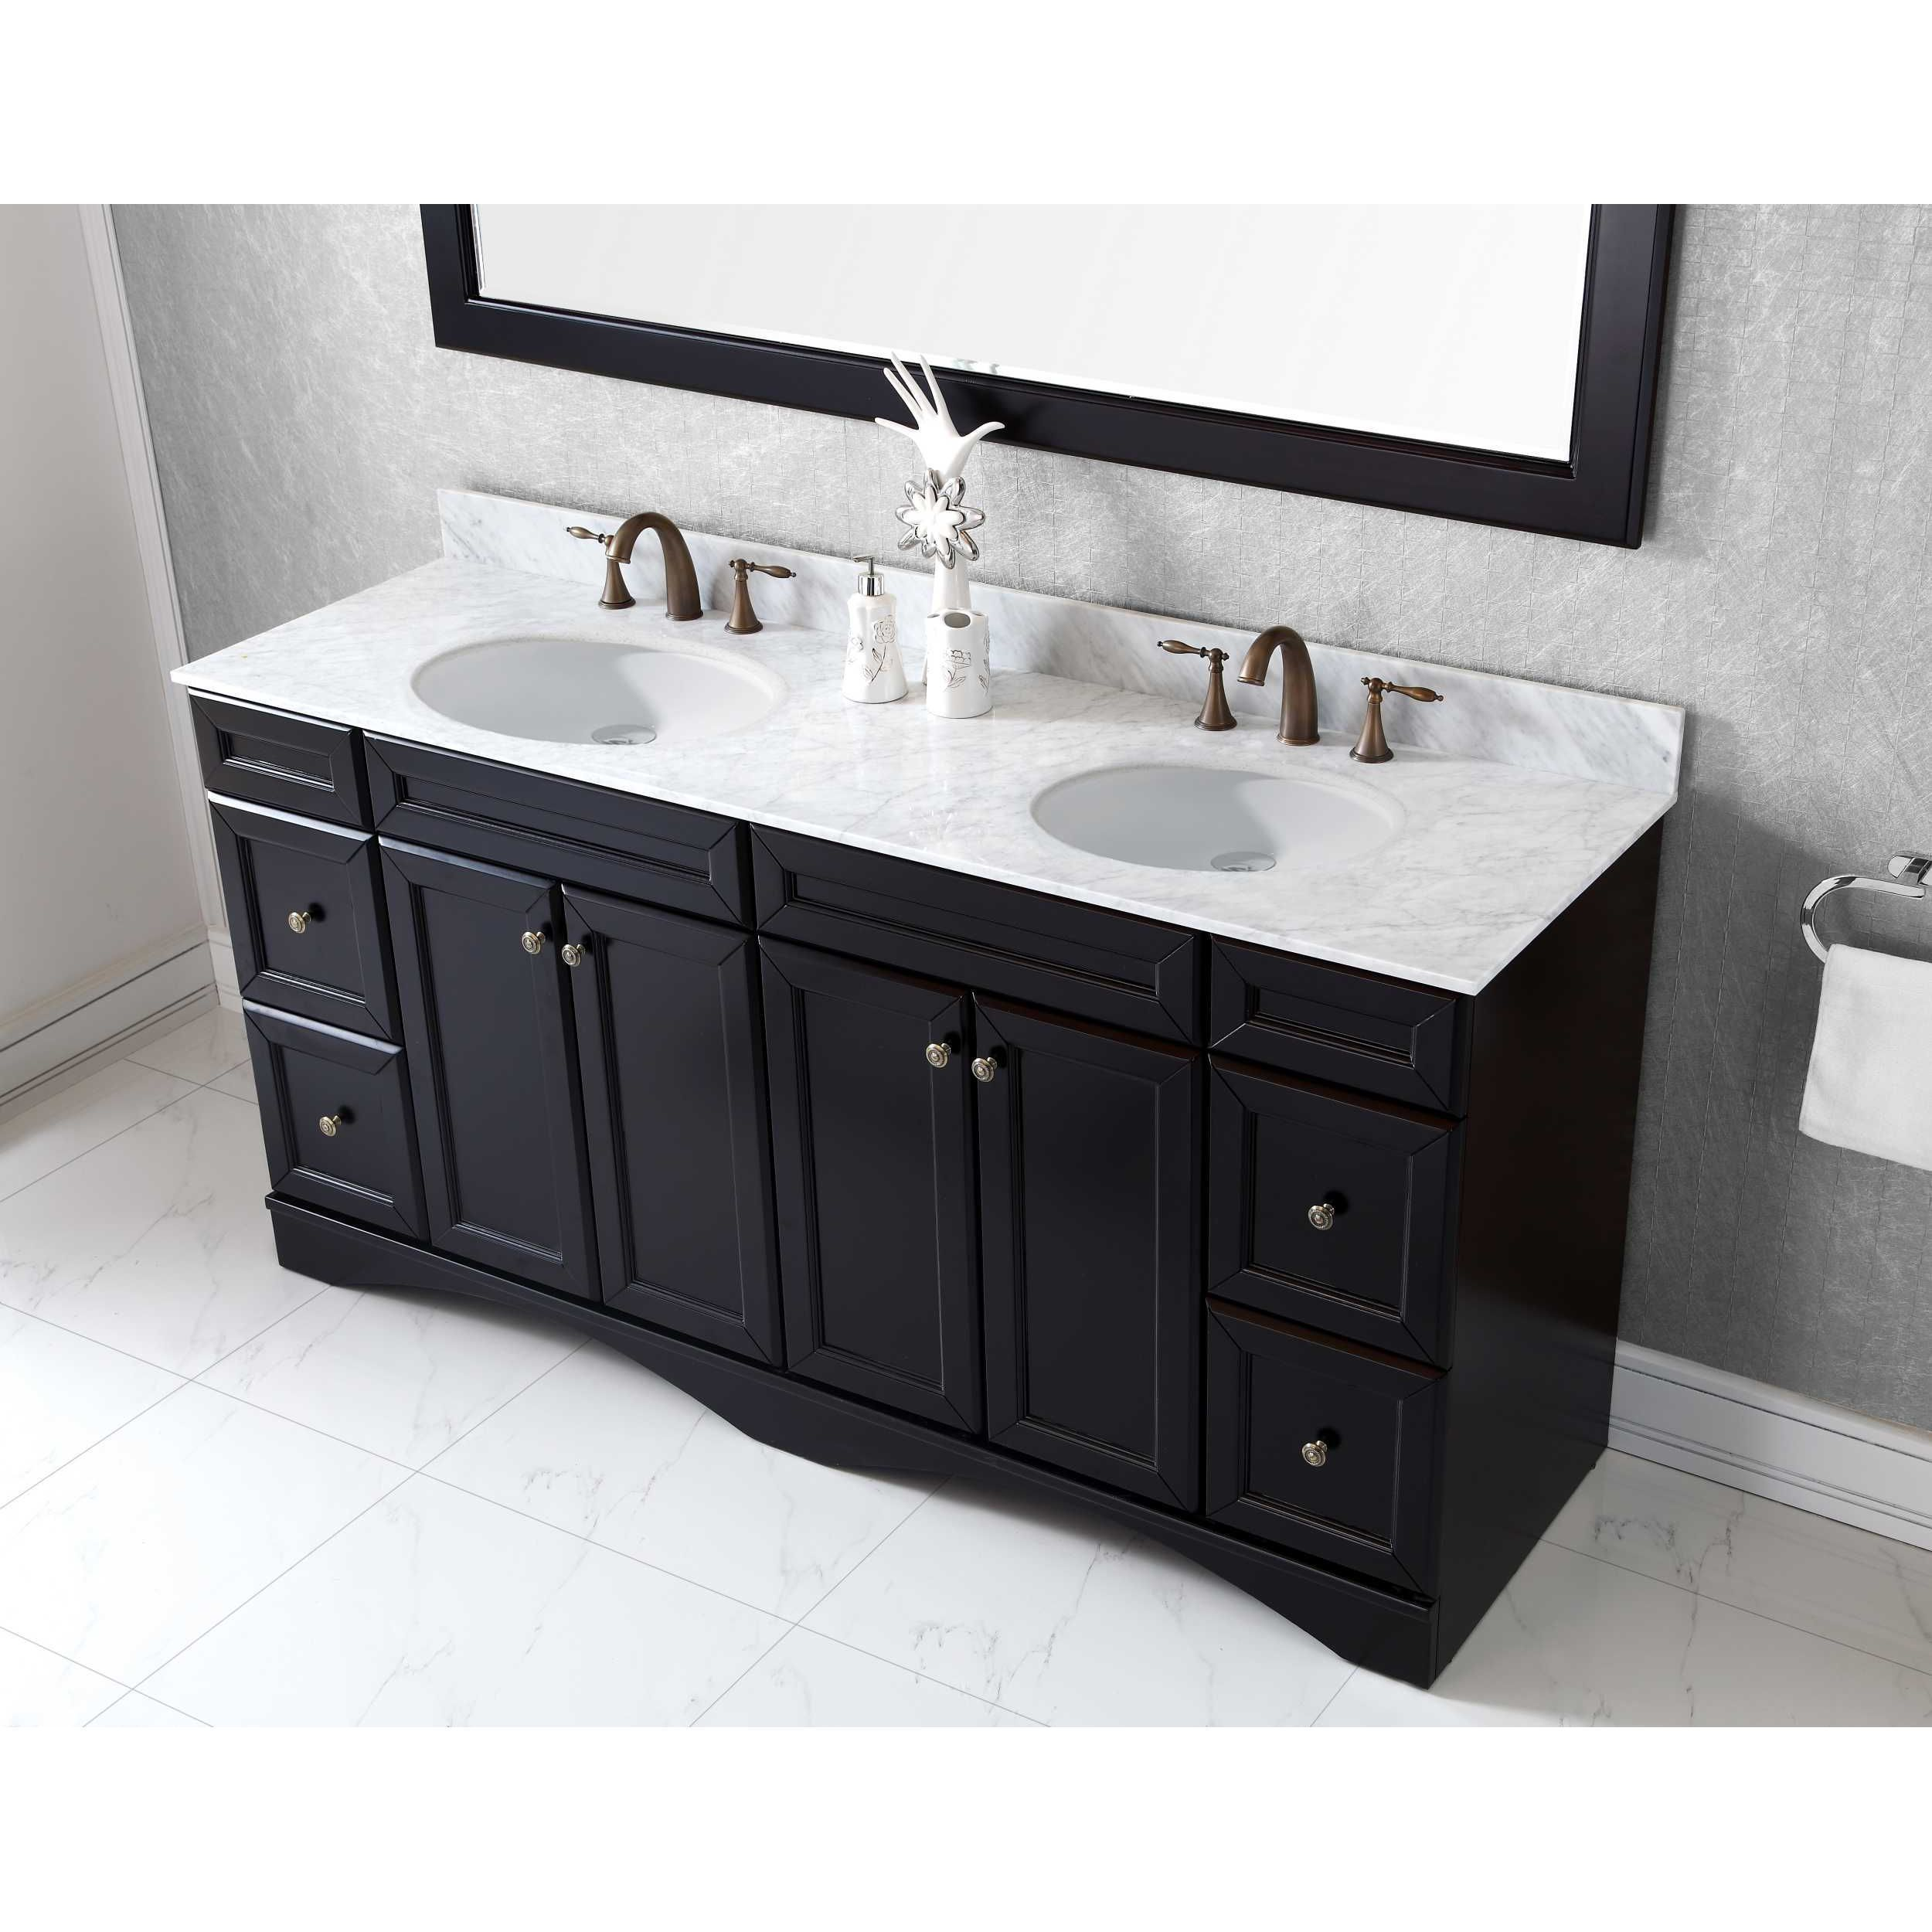 Virtu Usa Talisa 72 Inch Round White Marble Double Bathroom Vanity Set Without Faucets On Free Shipping Today 14452216